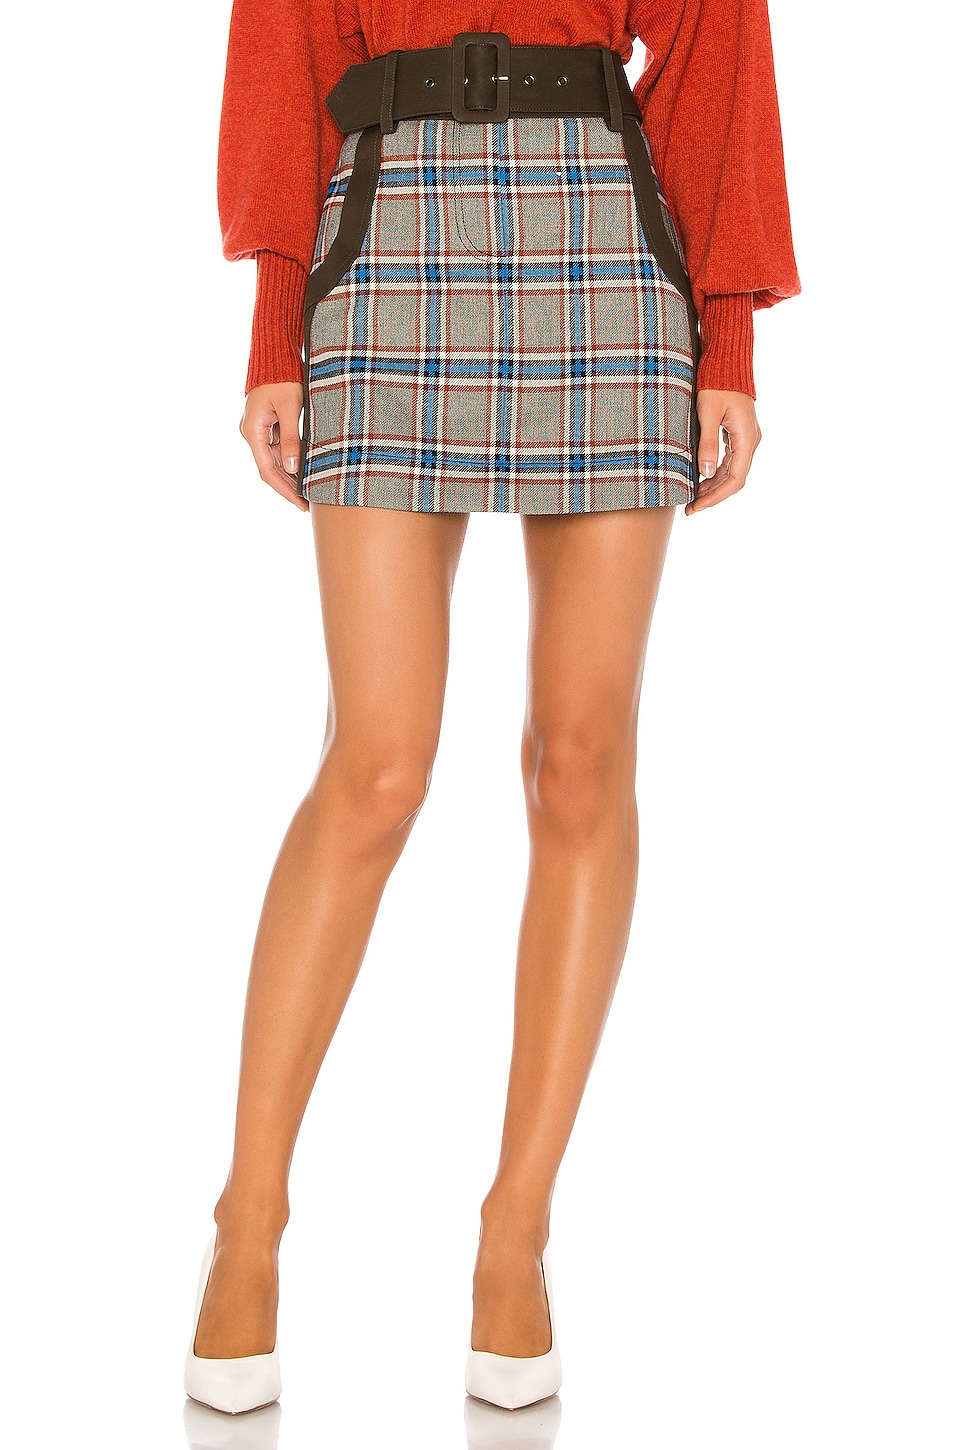 Tanya Taylor Chloe Skirt in Grey Plaid